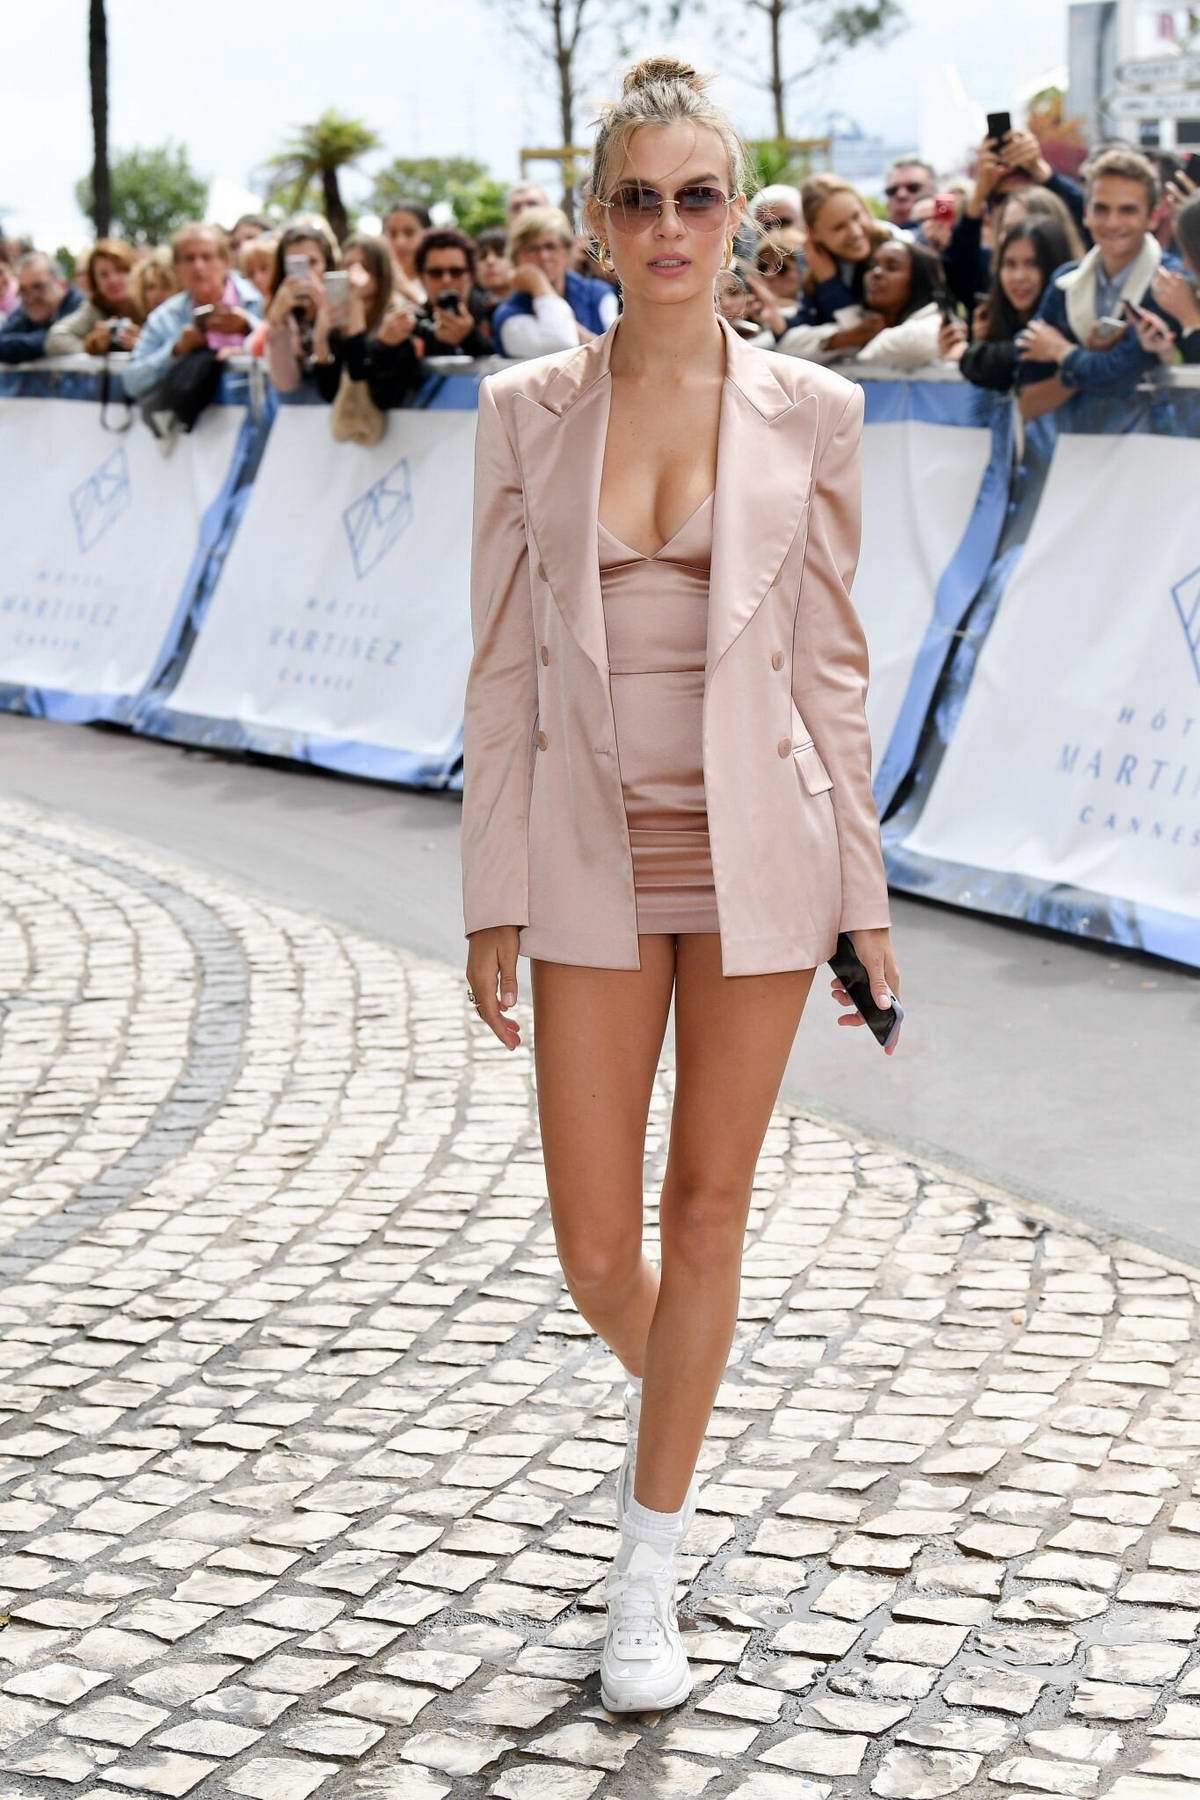 Josephine Skriver looks stunning in pink while out during the 72nd Cannes Film Festival in Cannes, France